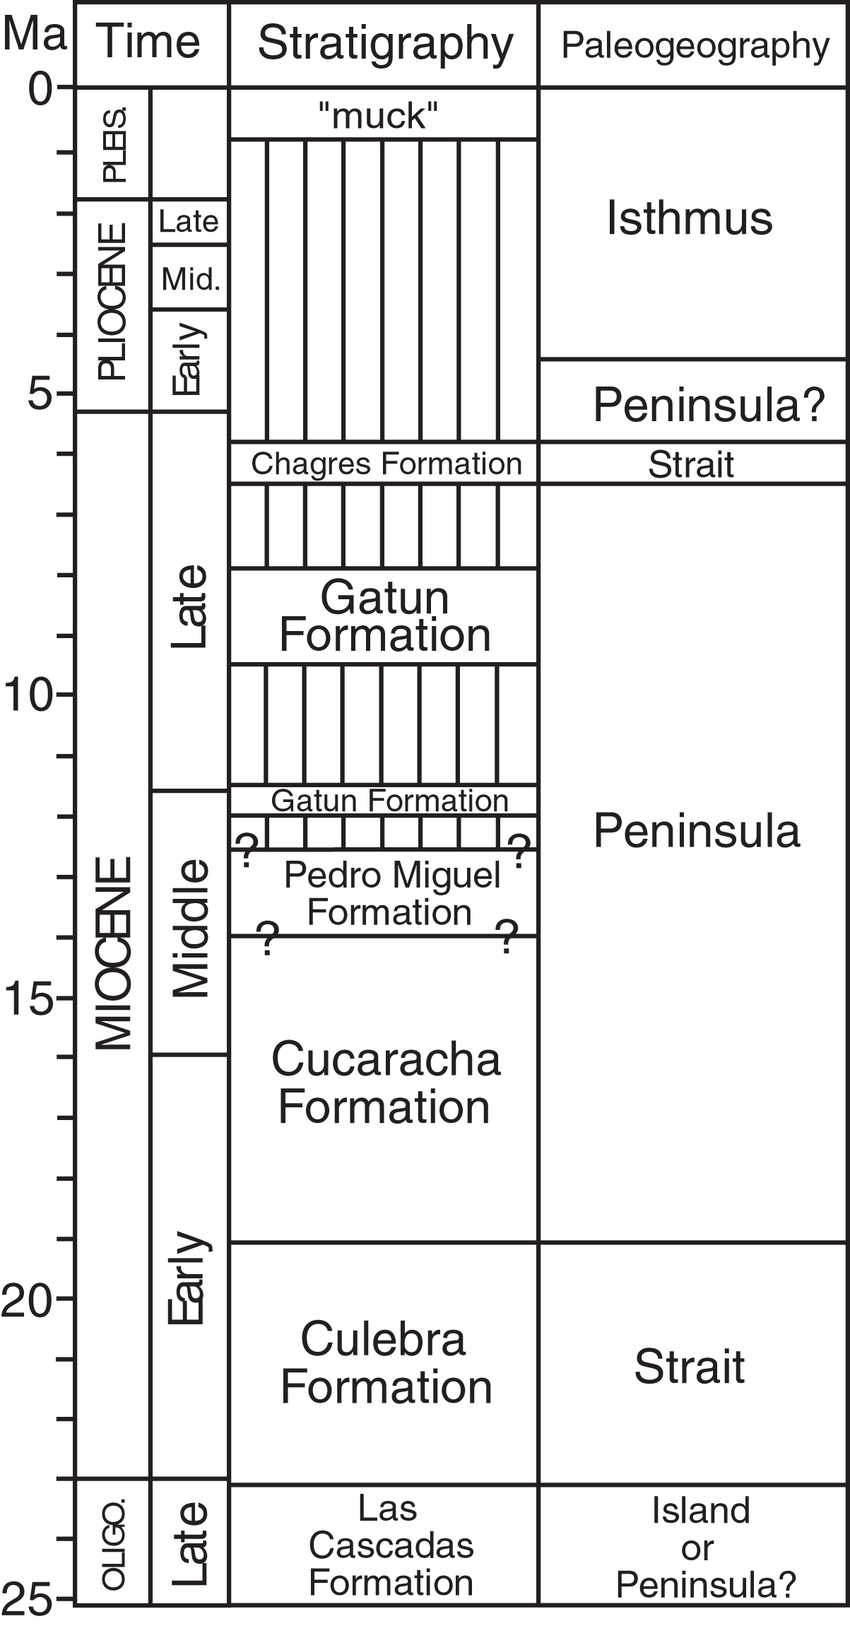 medium resolution of geologic history of the panama canal basin showing geologic time stratigraphy and paleogeography